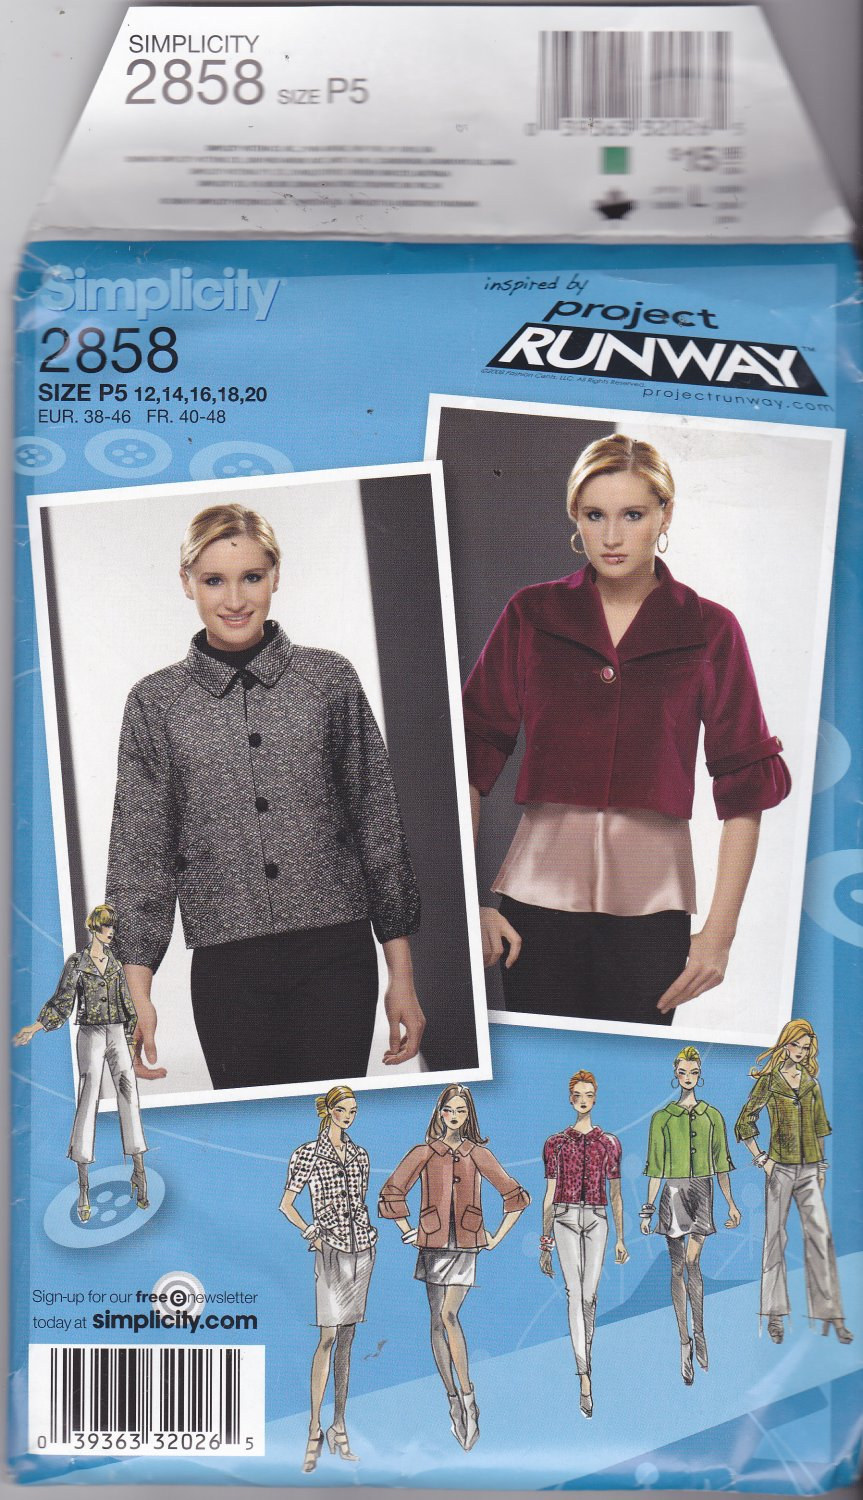 Simplicity 2858 Pattern Uncut FF size 12 14 16 18 20 plus Lined Jackets Project Runway